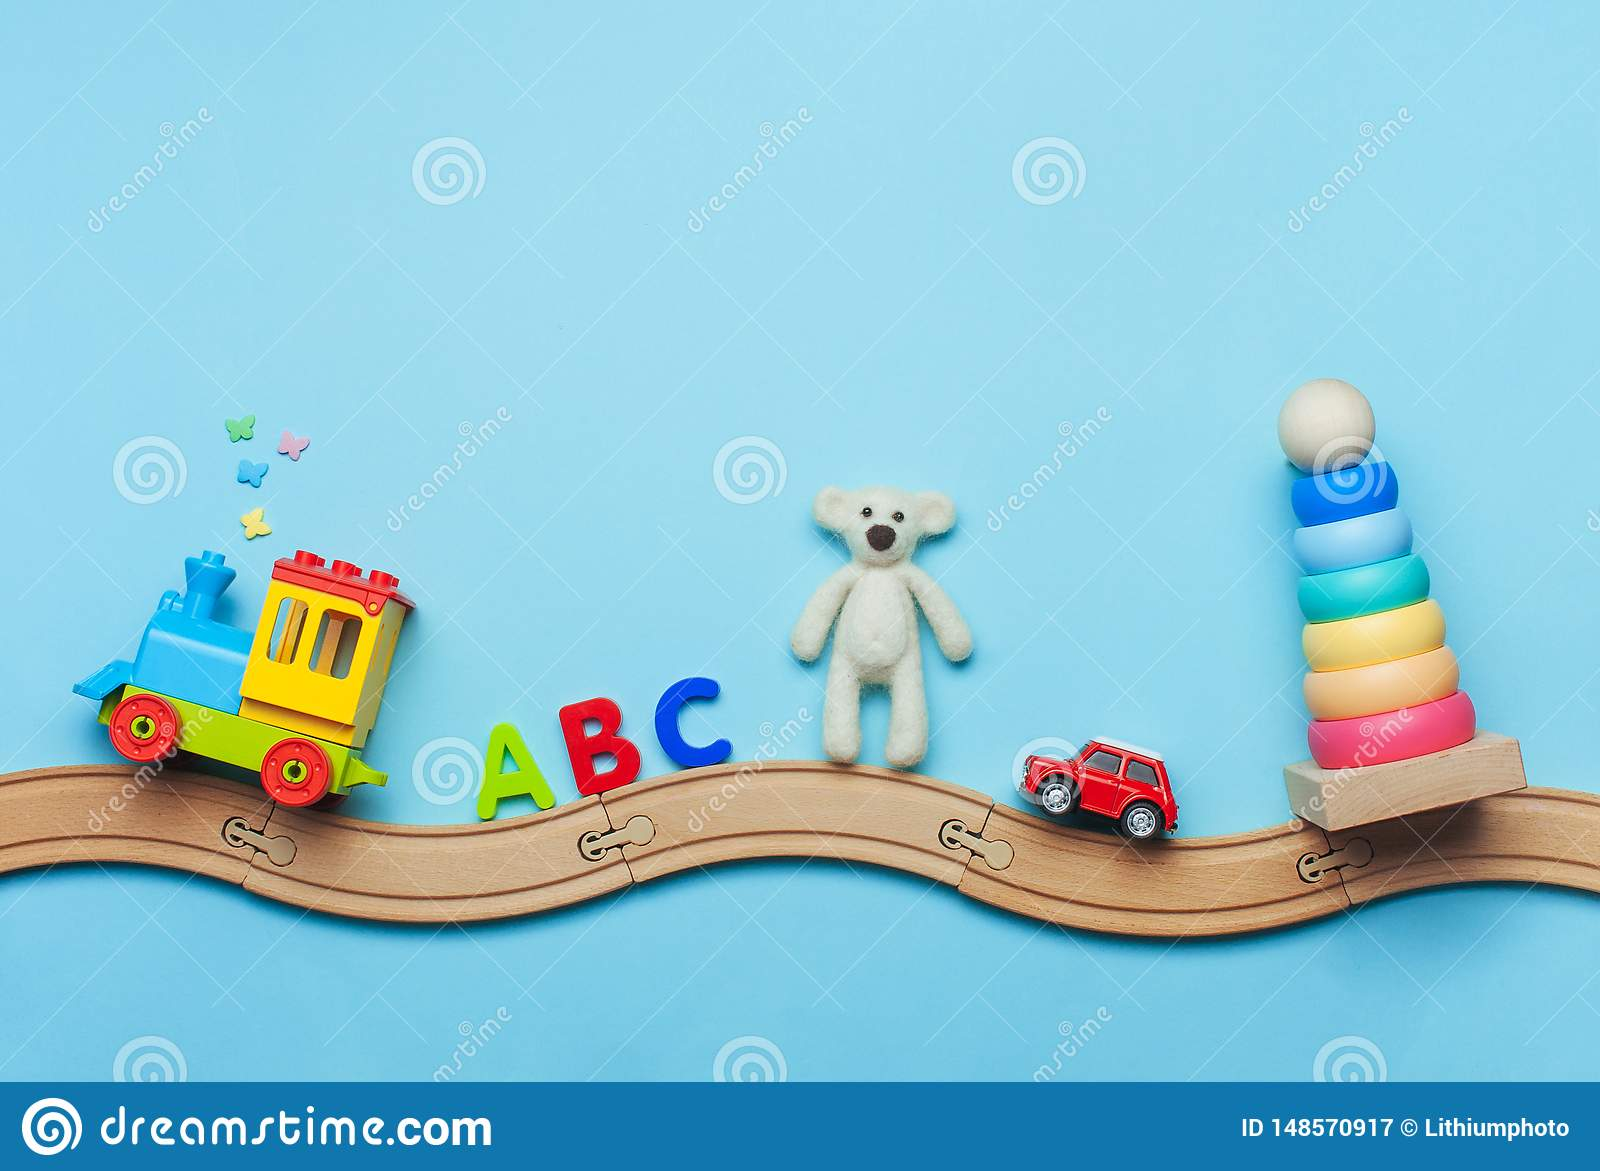 Kids Toys On Wooden Railway On Blue Background With Copy Space Stock